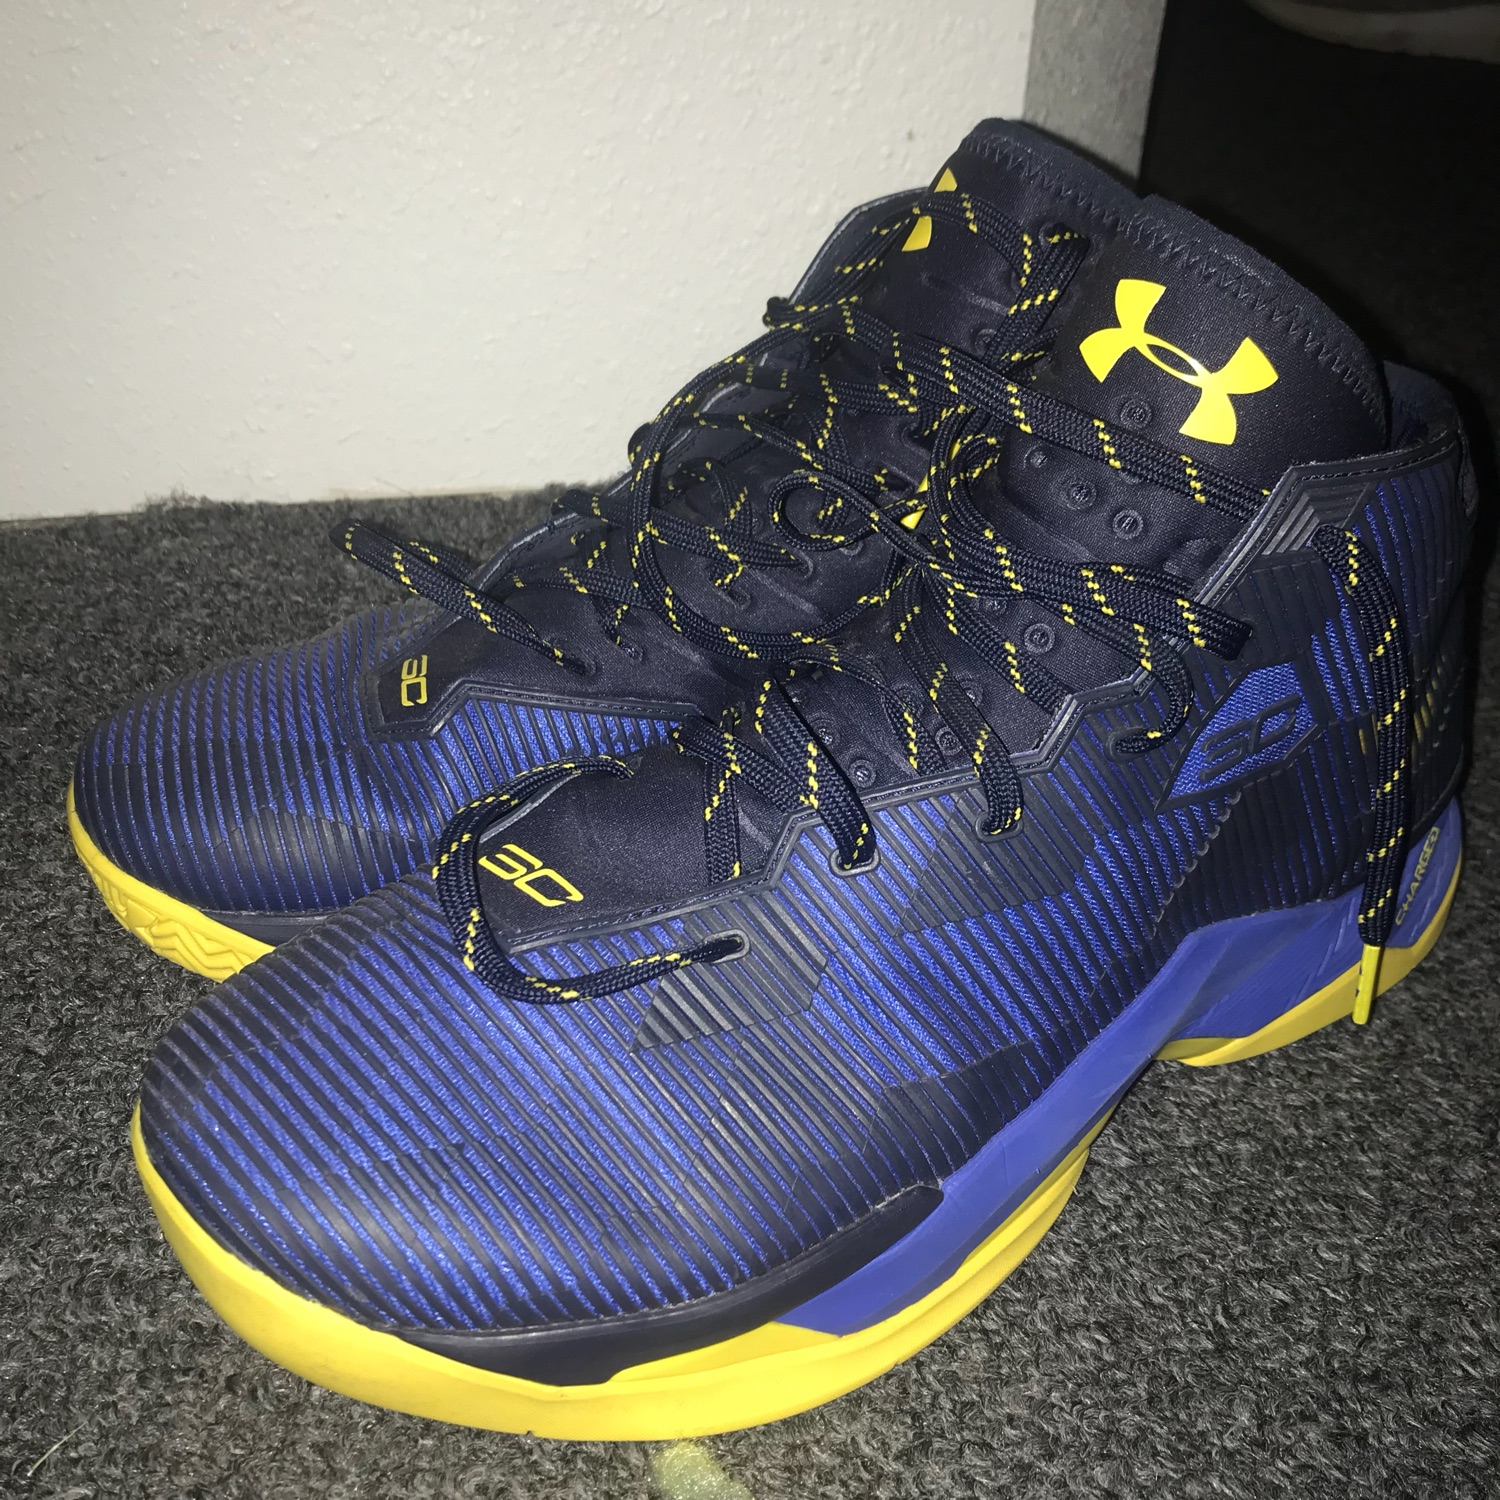 separation shoes fb559 48454 Under Armor Curry 2.5